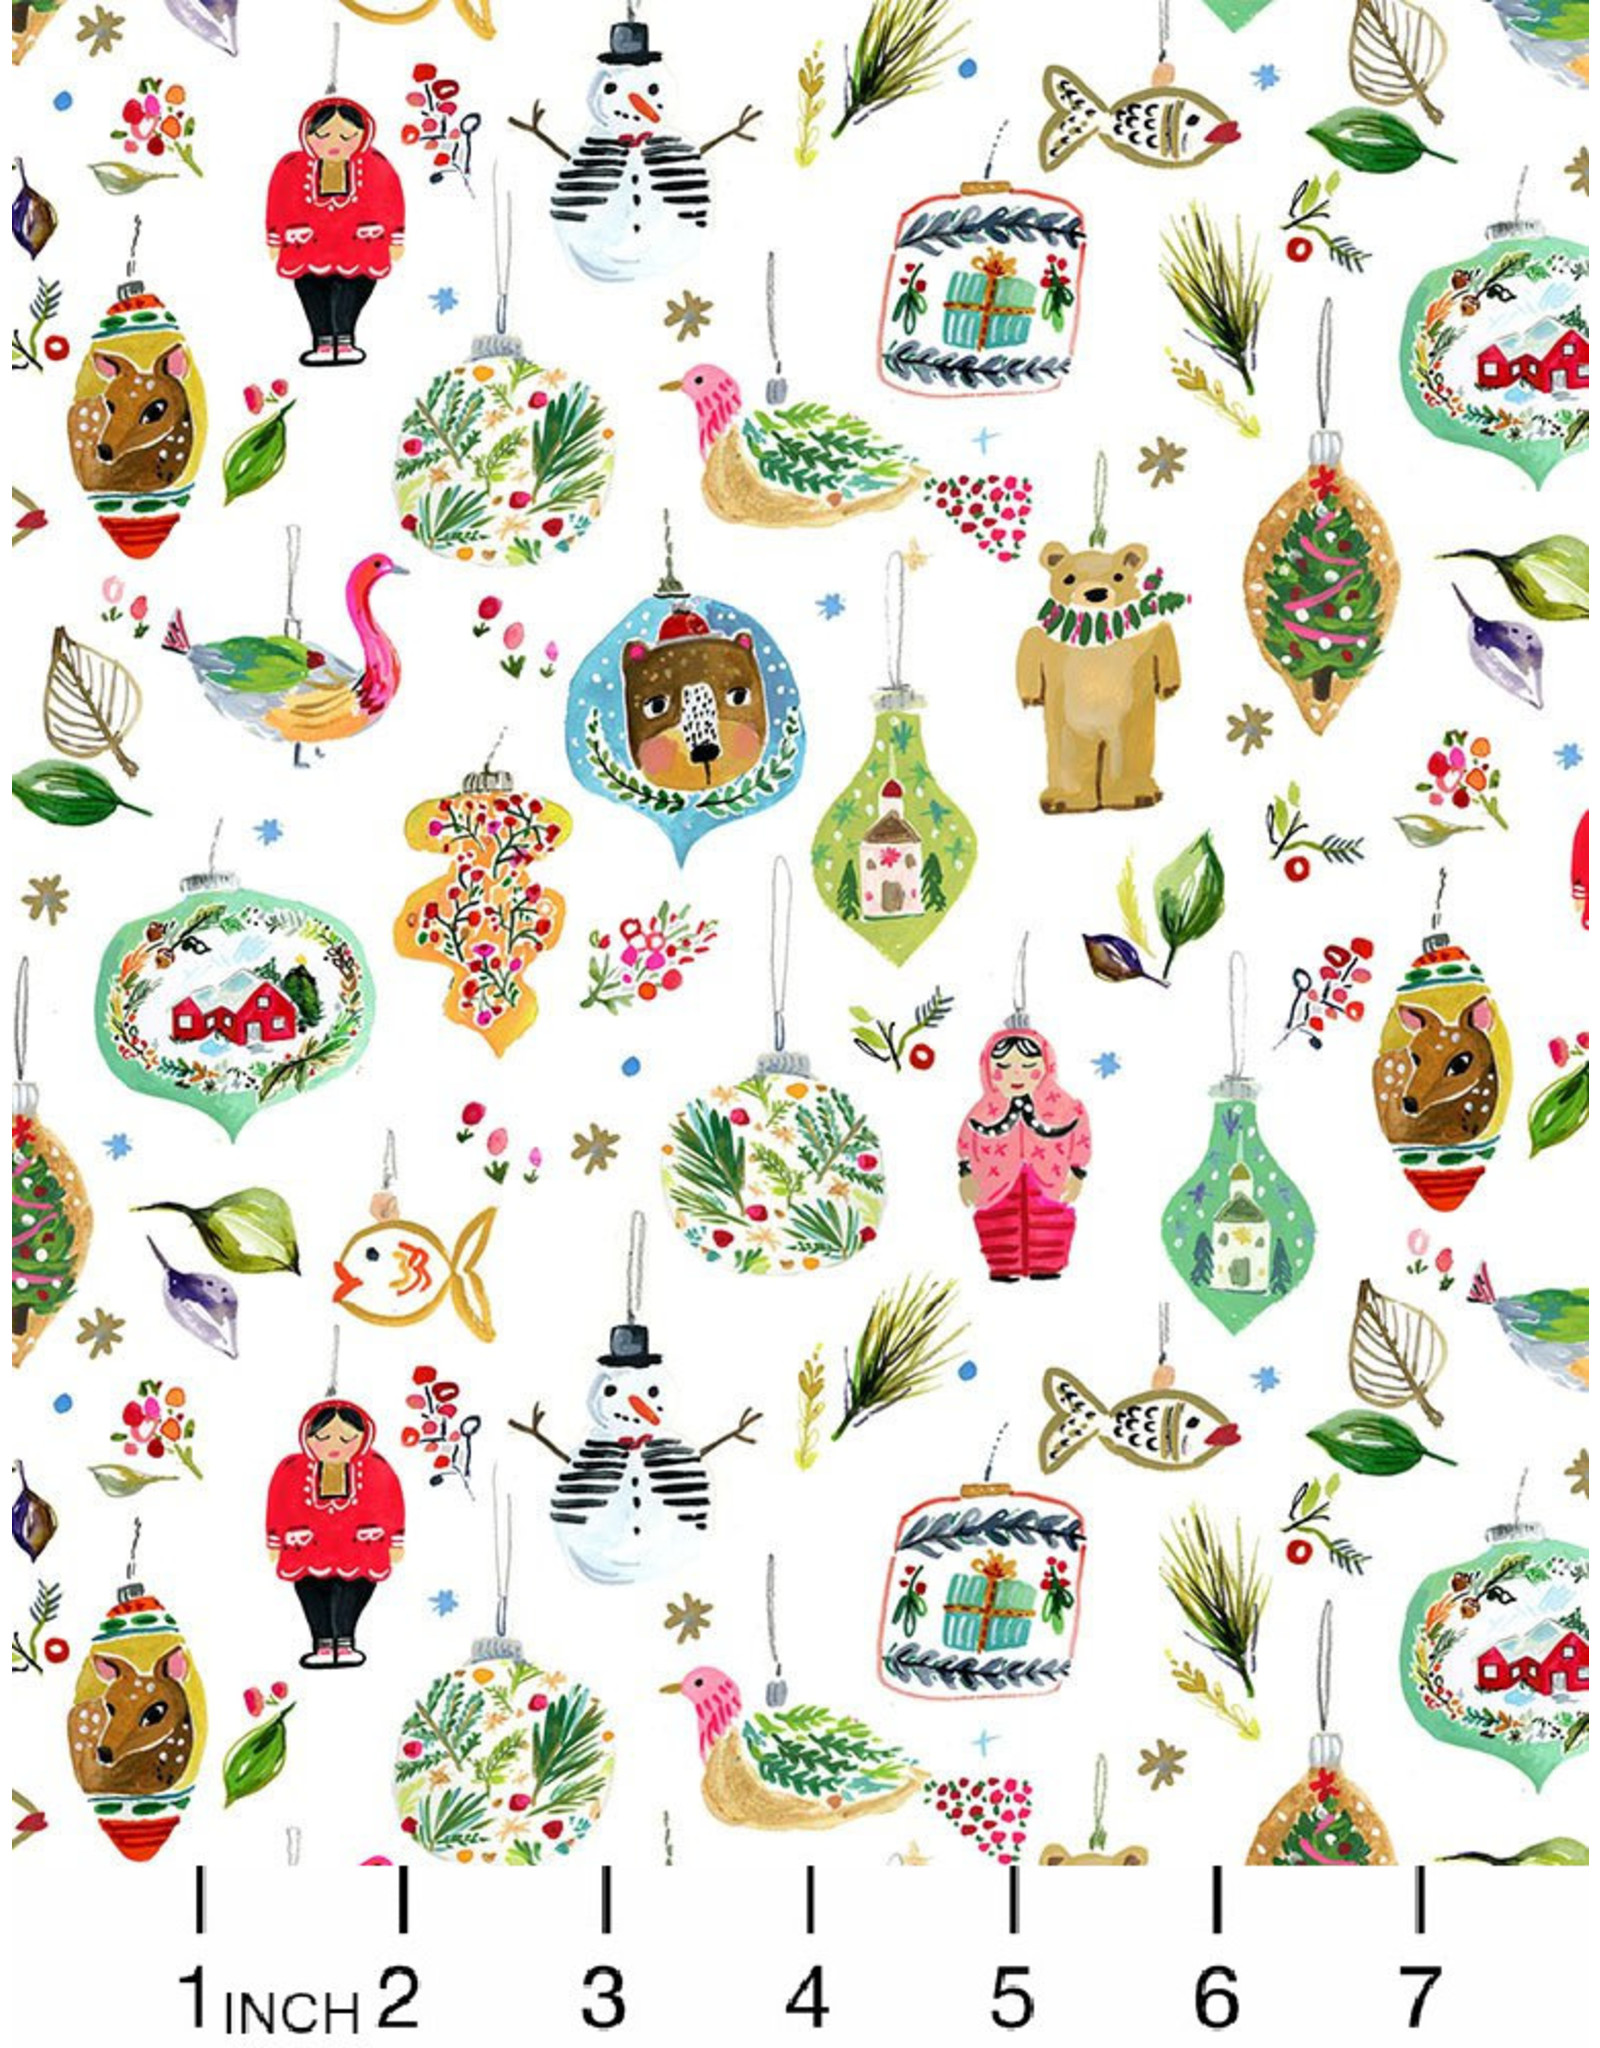 August Wren Love at Frost Sight, Ornaments, Fabric Half-Yards